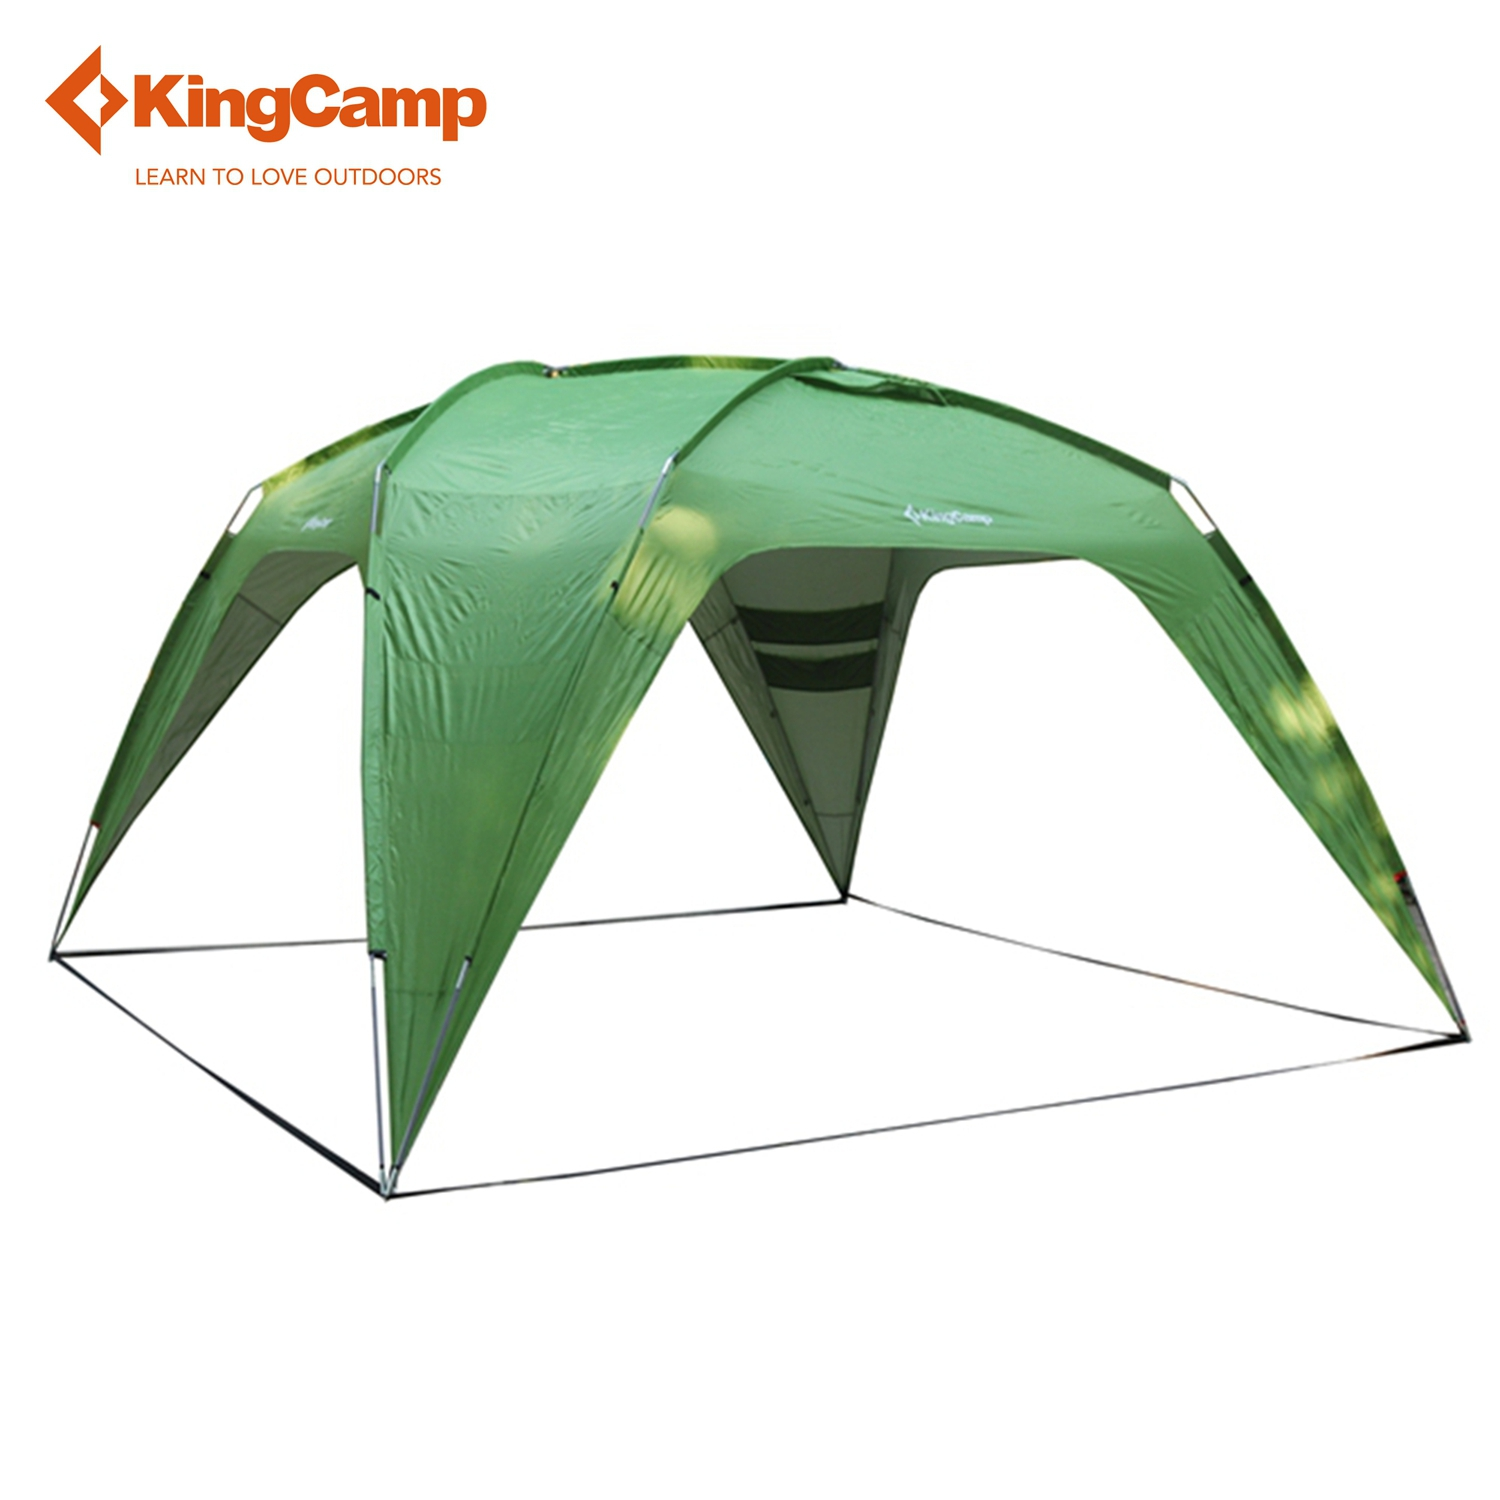 kingcamp outdoor canopy tent for patio gazebo wedding party commercial fair car sun shelter for picnic